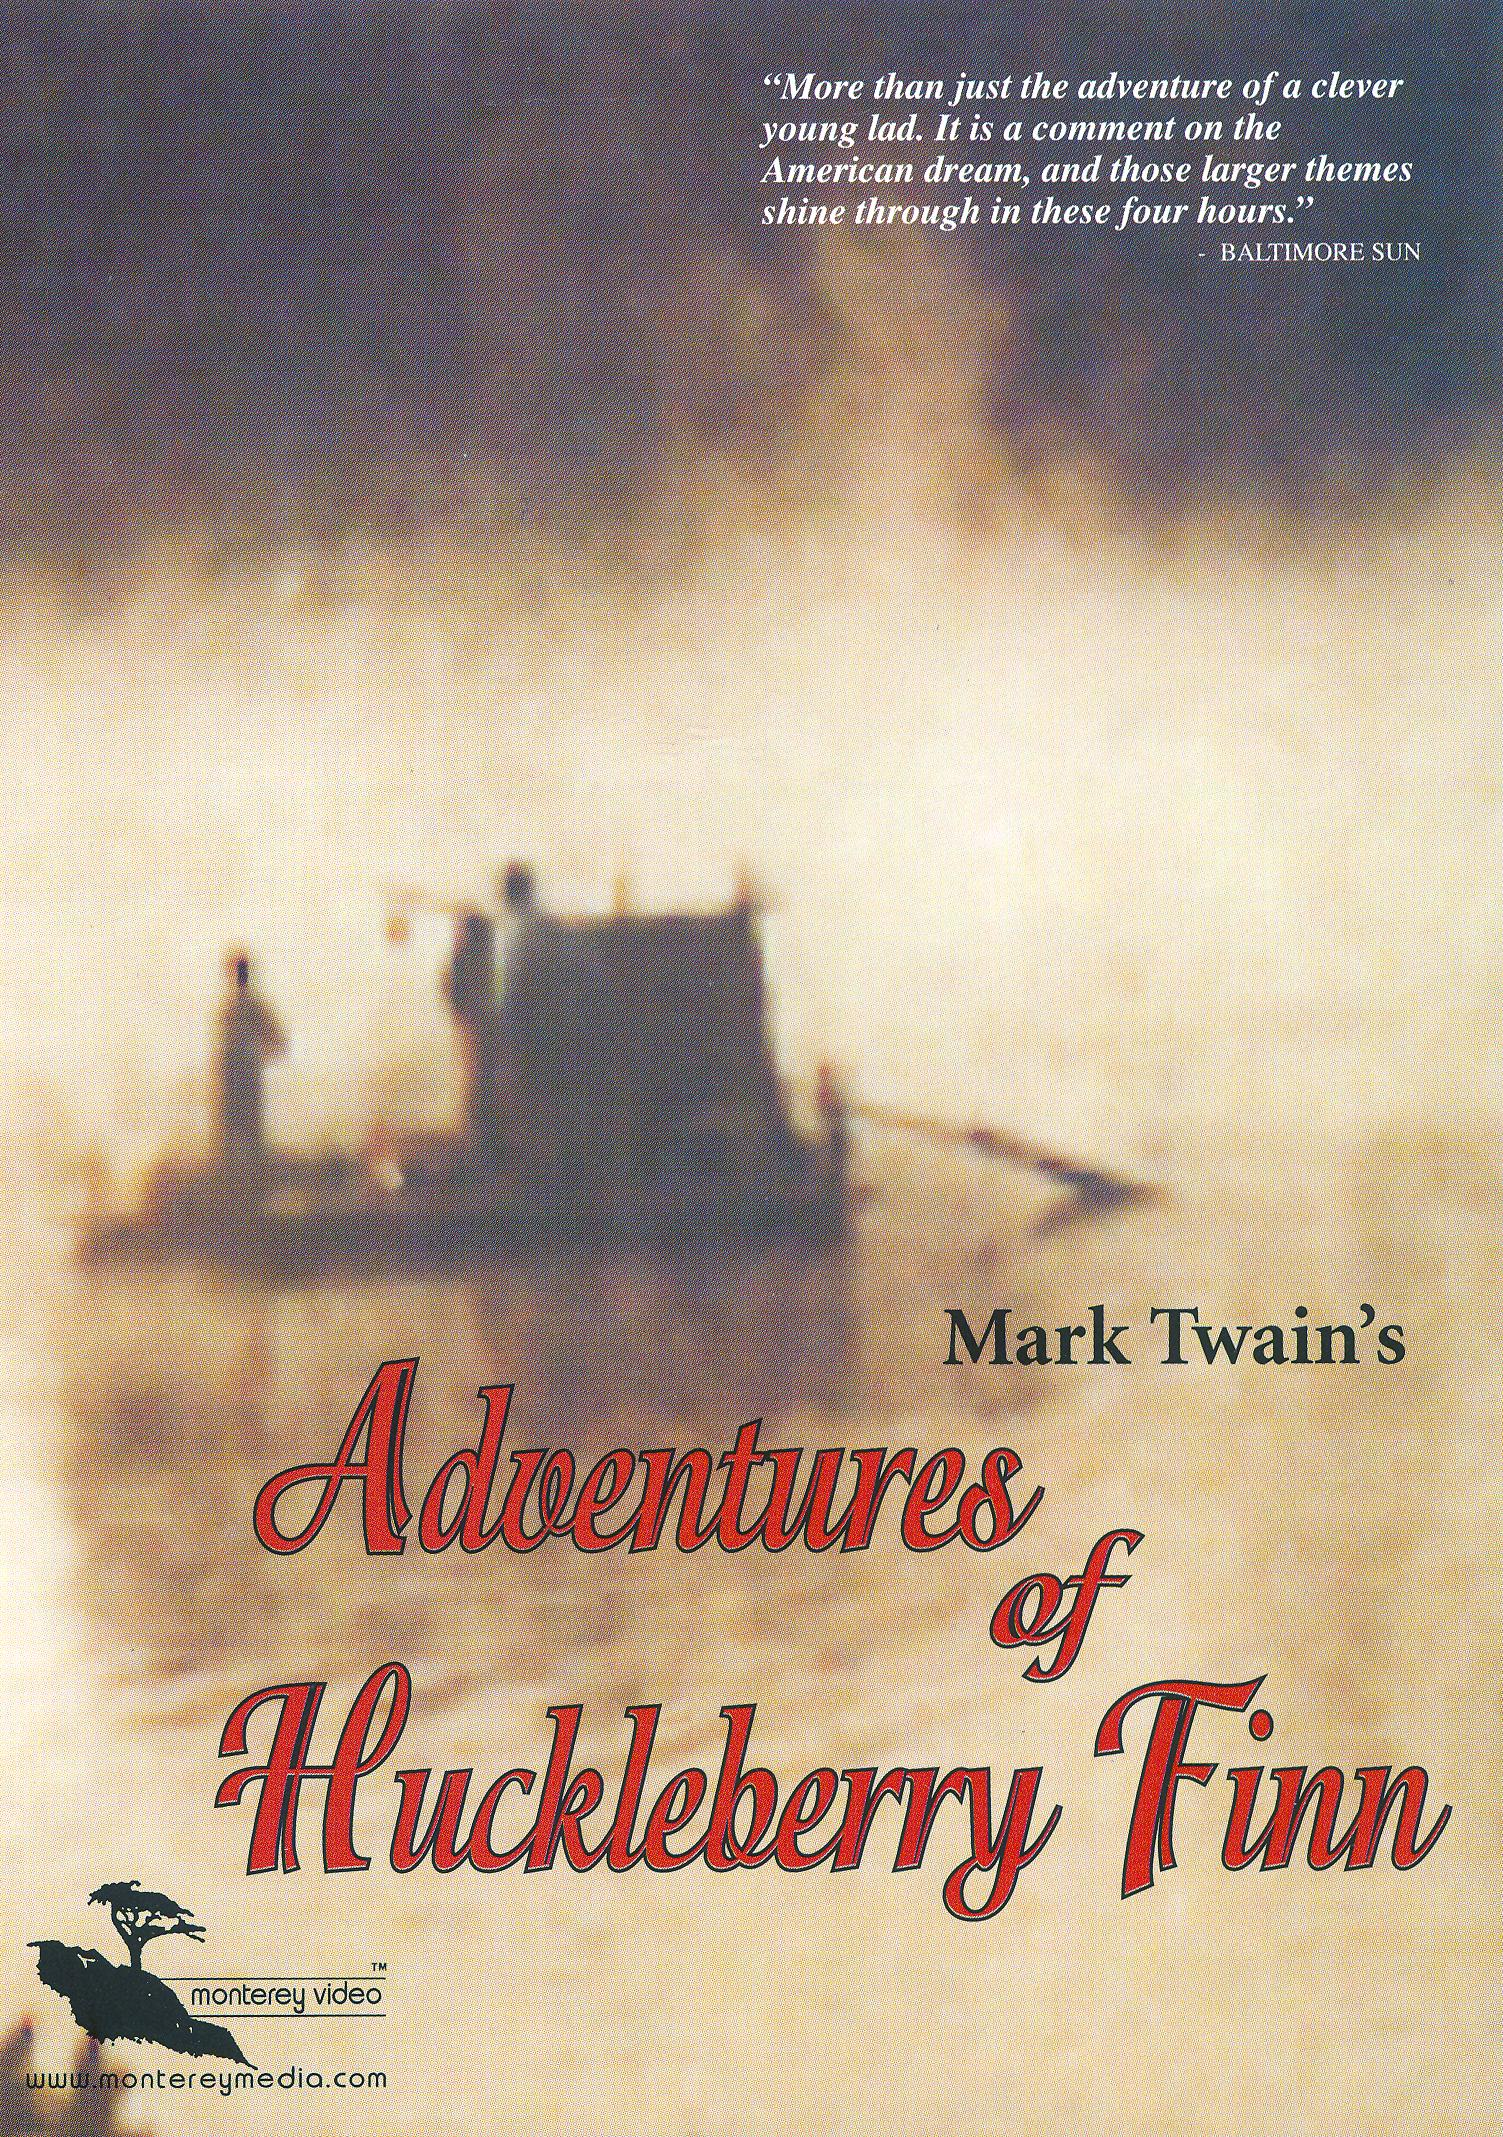 american dream of huckleberry